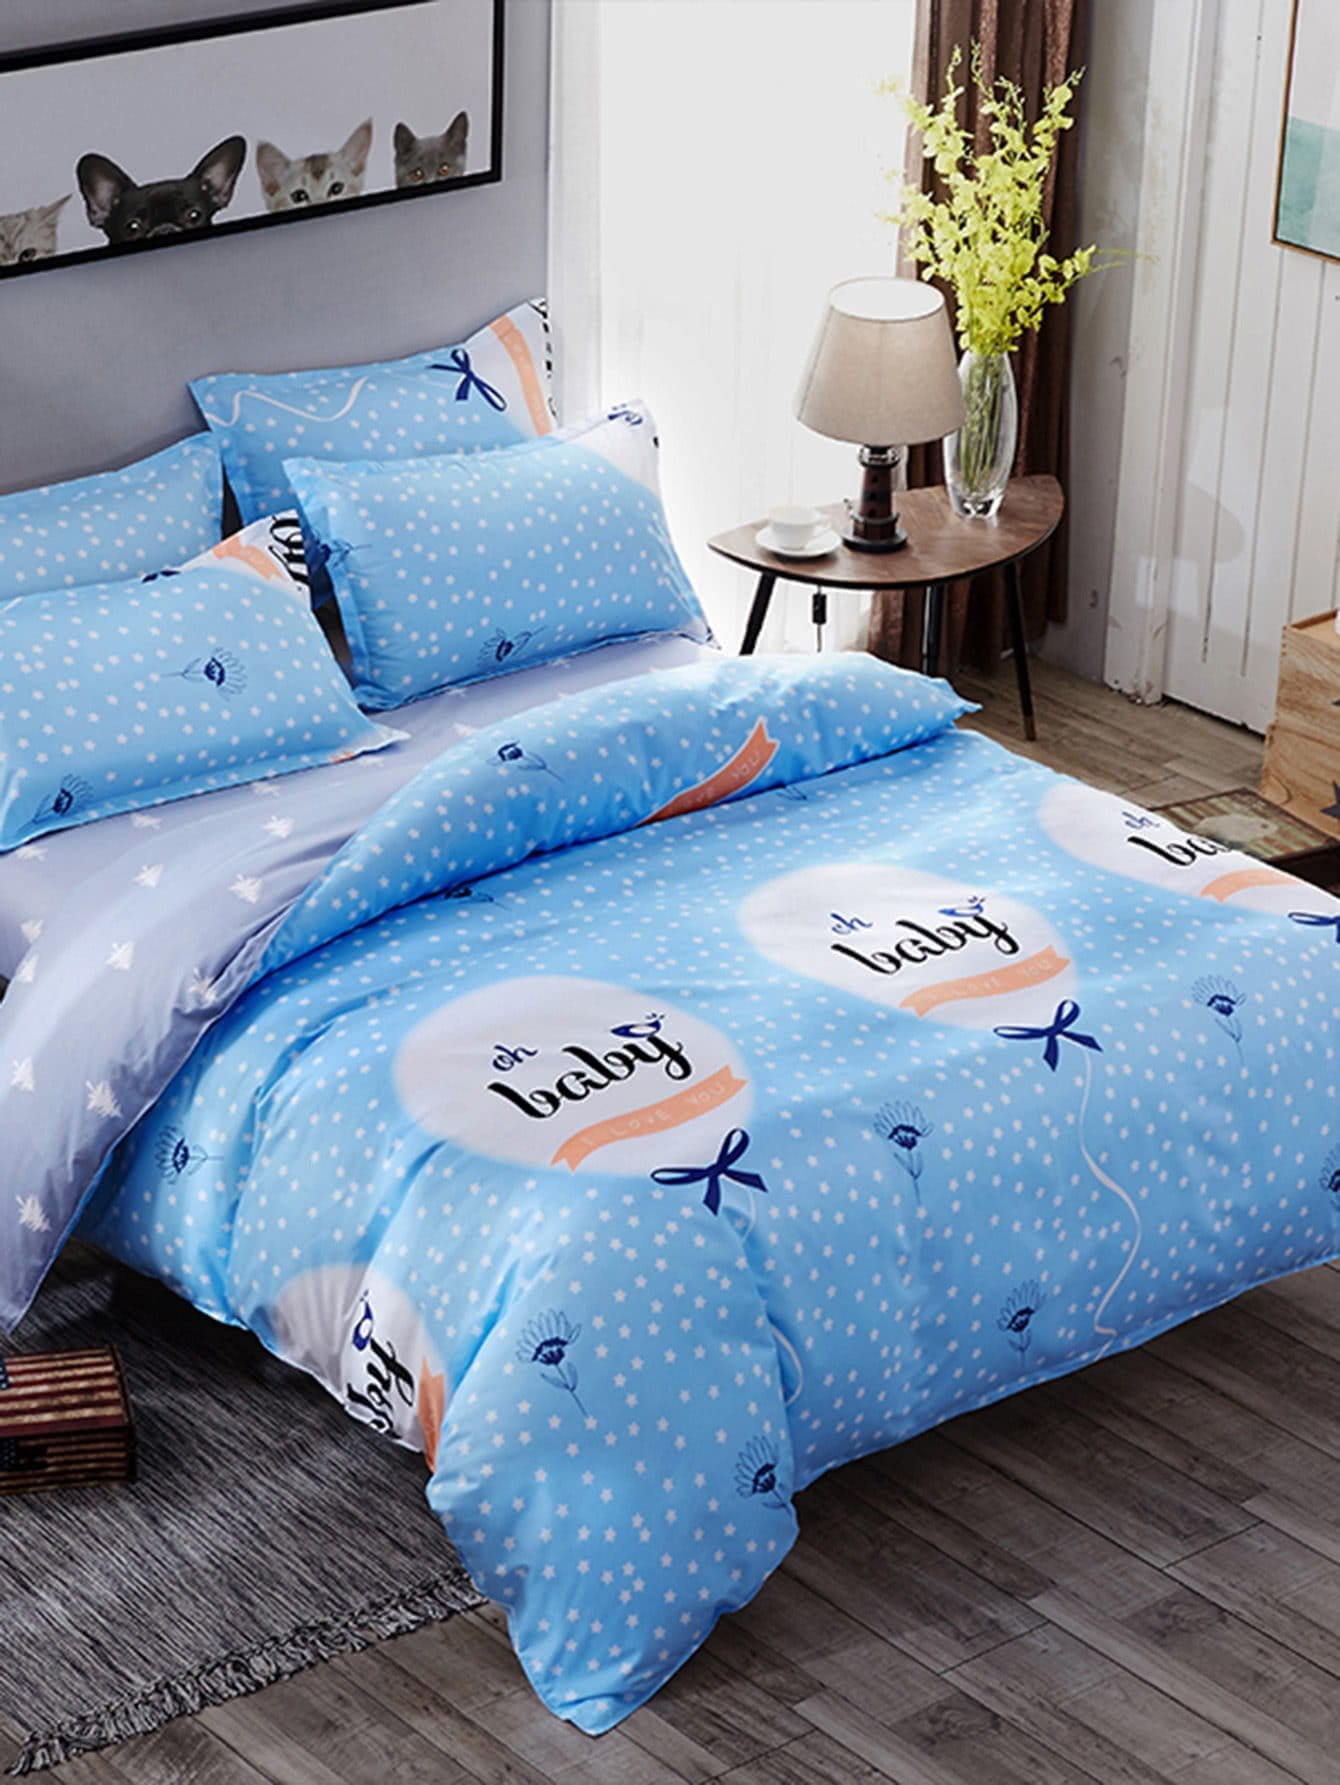 Polka Dot Letter Print Bedding Set letter print two tone bedding set